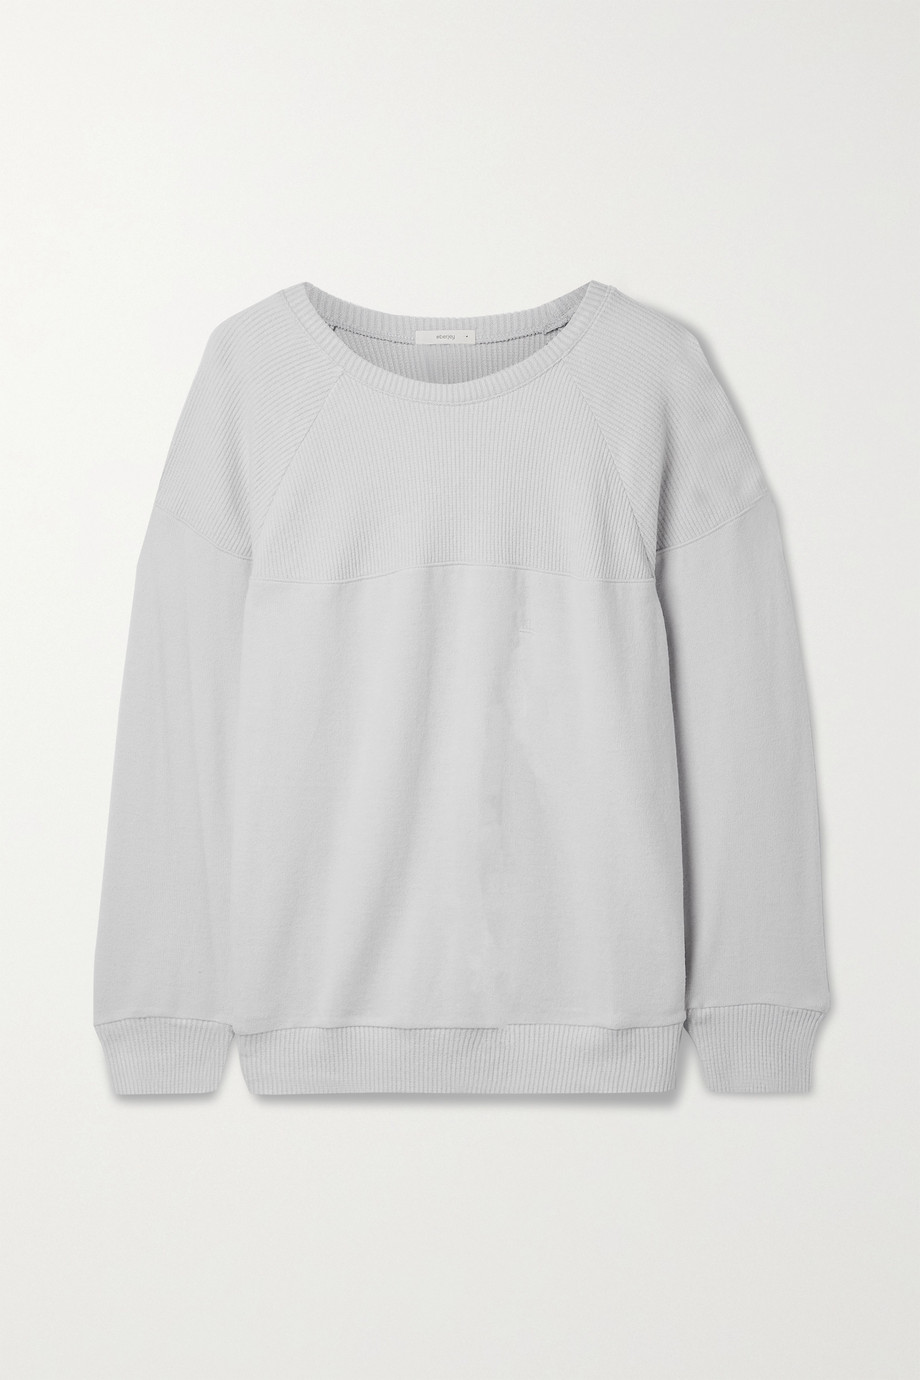 Eberjey Cozy Time stretch modal-blend sweatshirt